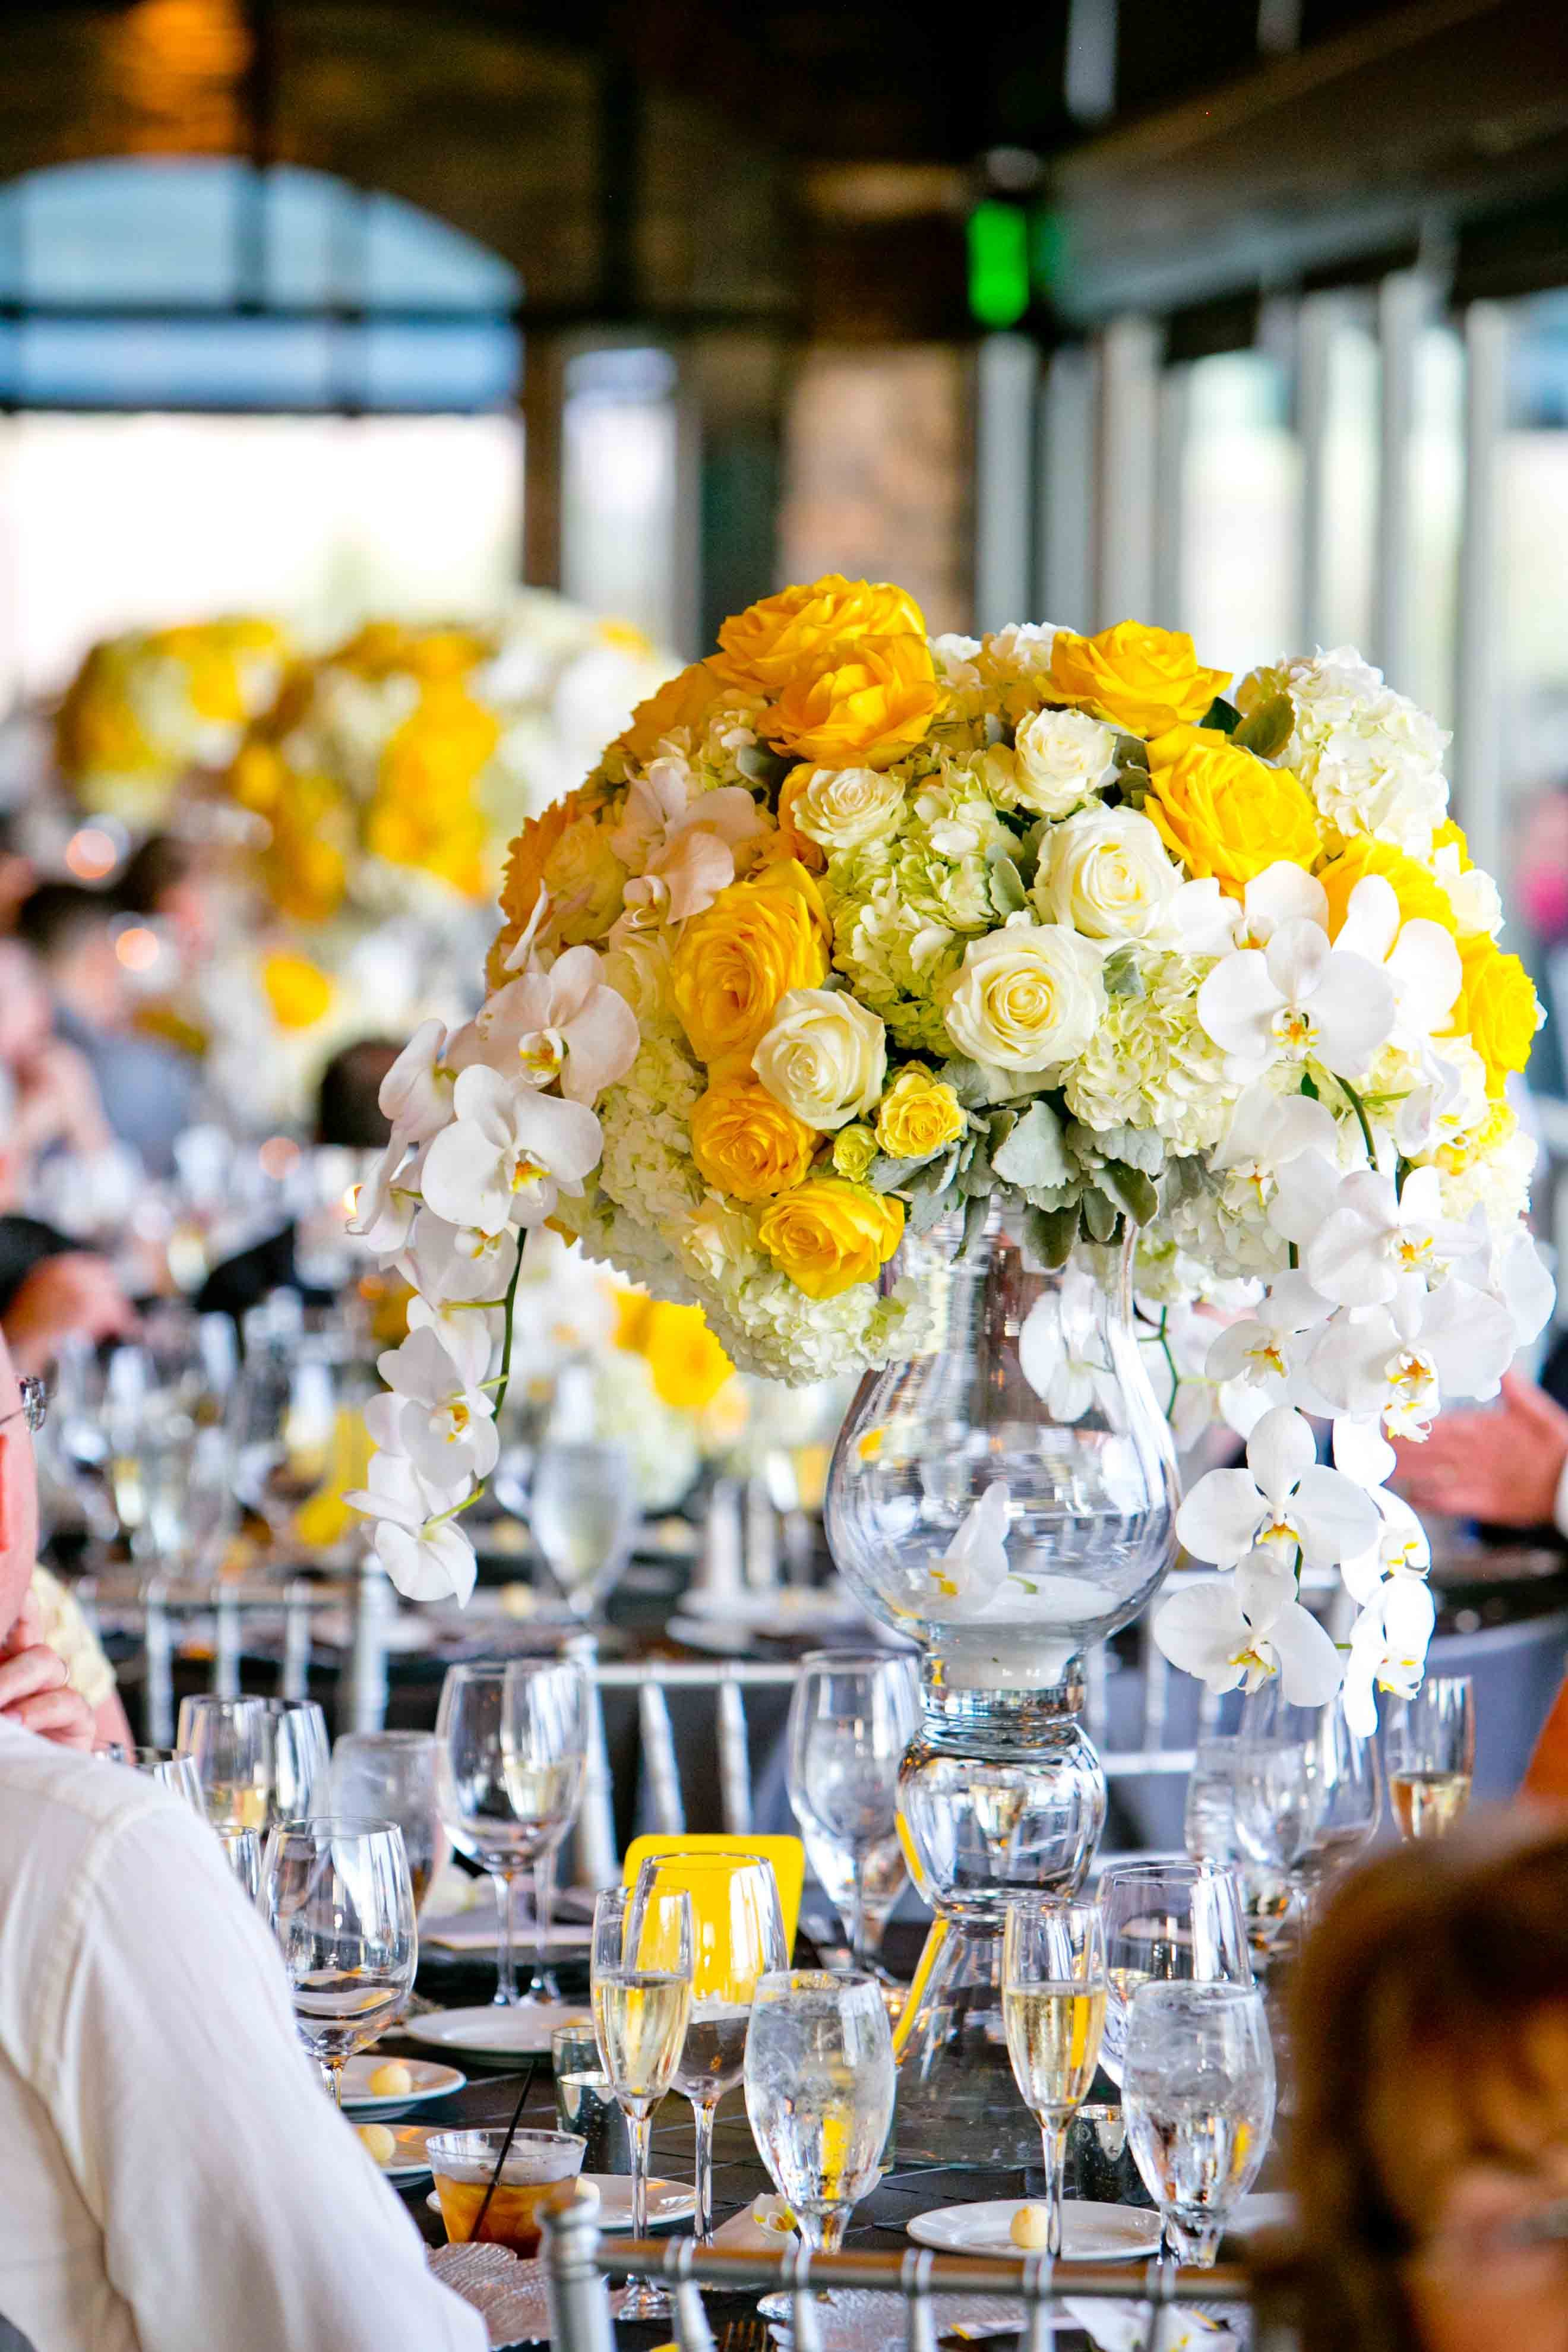 White And Yellow Floral Arrangements For The Wedding Reception